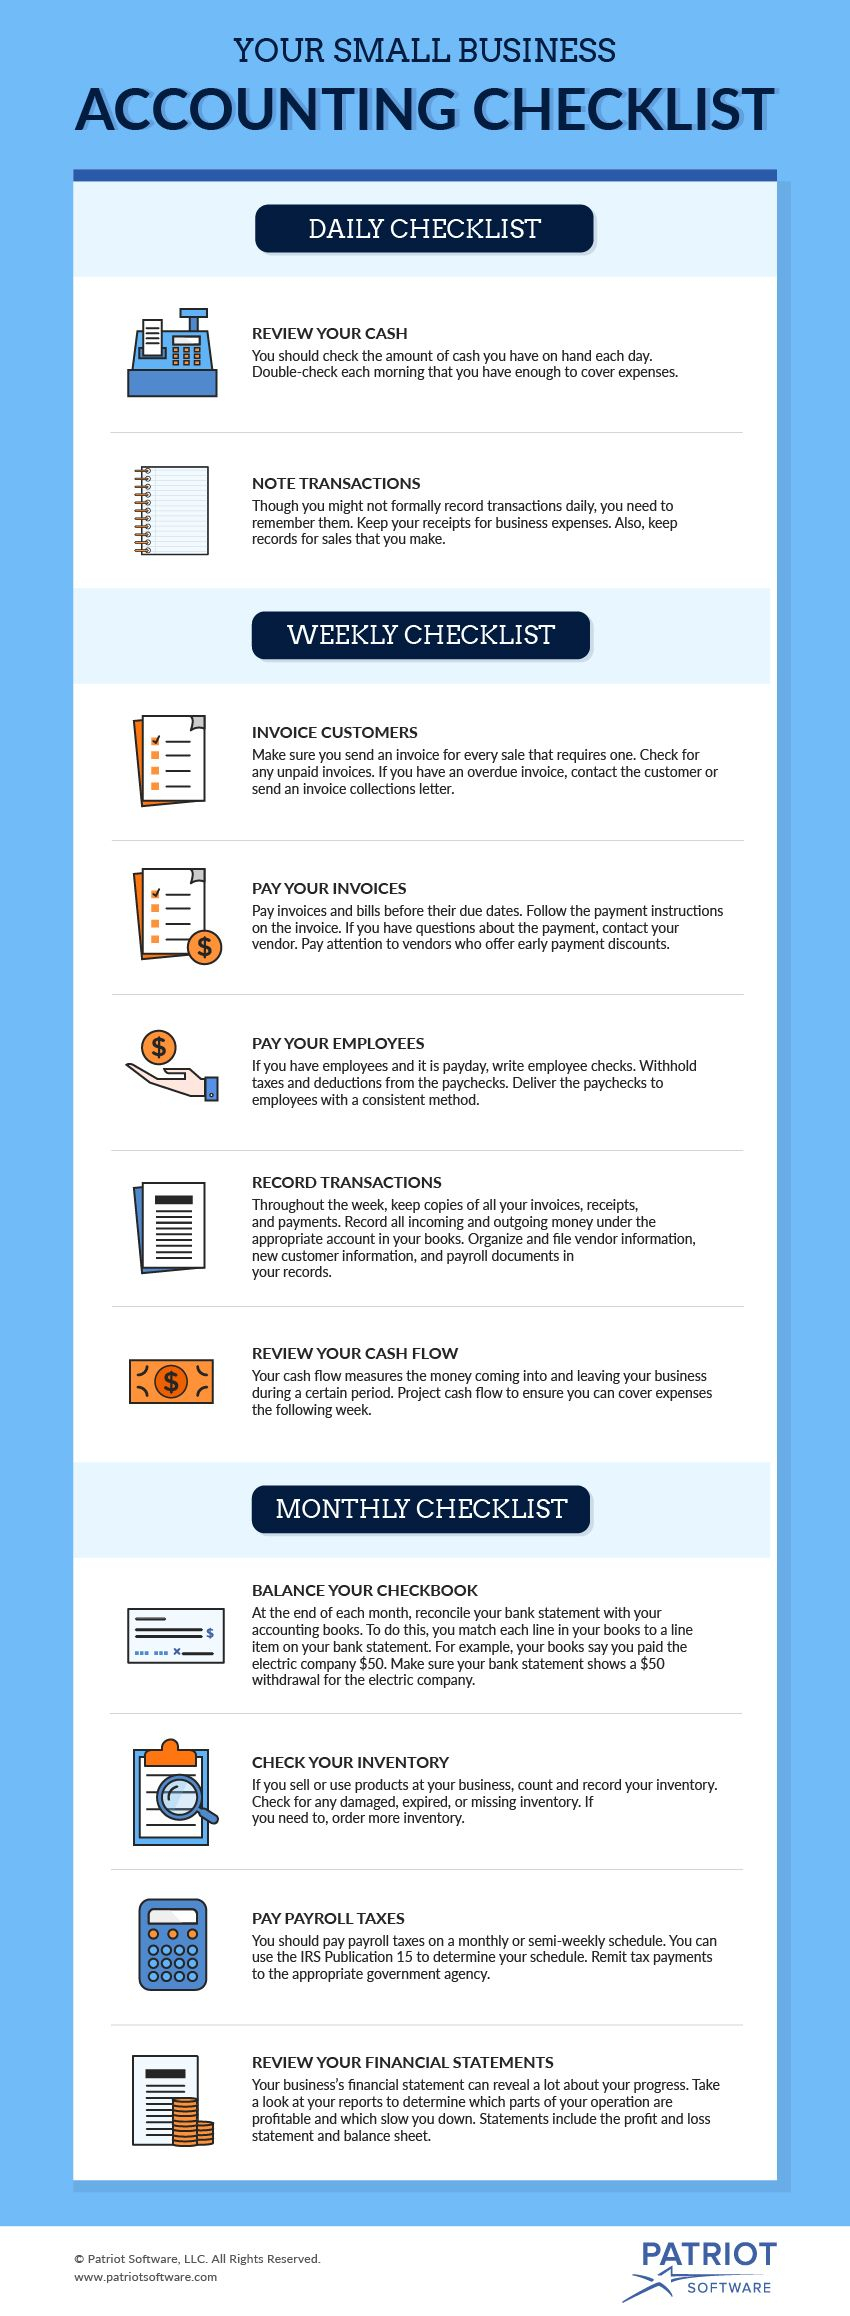 Your Go To Small Business Accounting Checklist With Month End Accounting Checklist Template